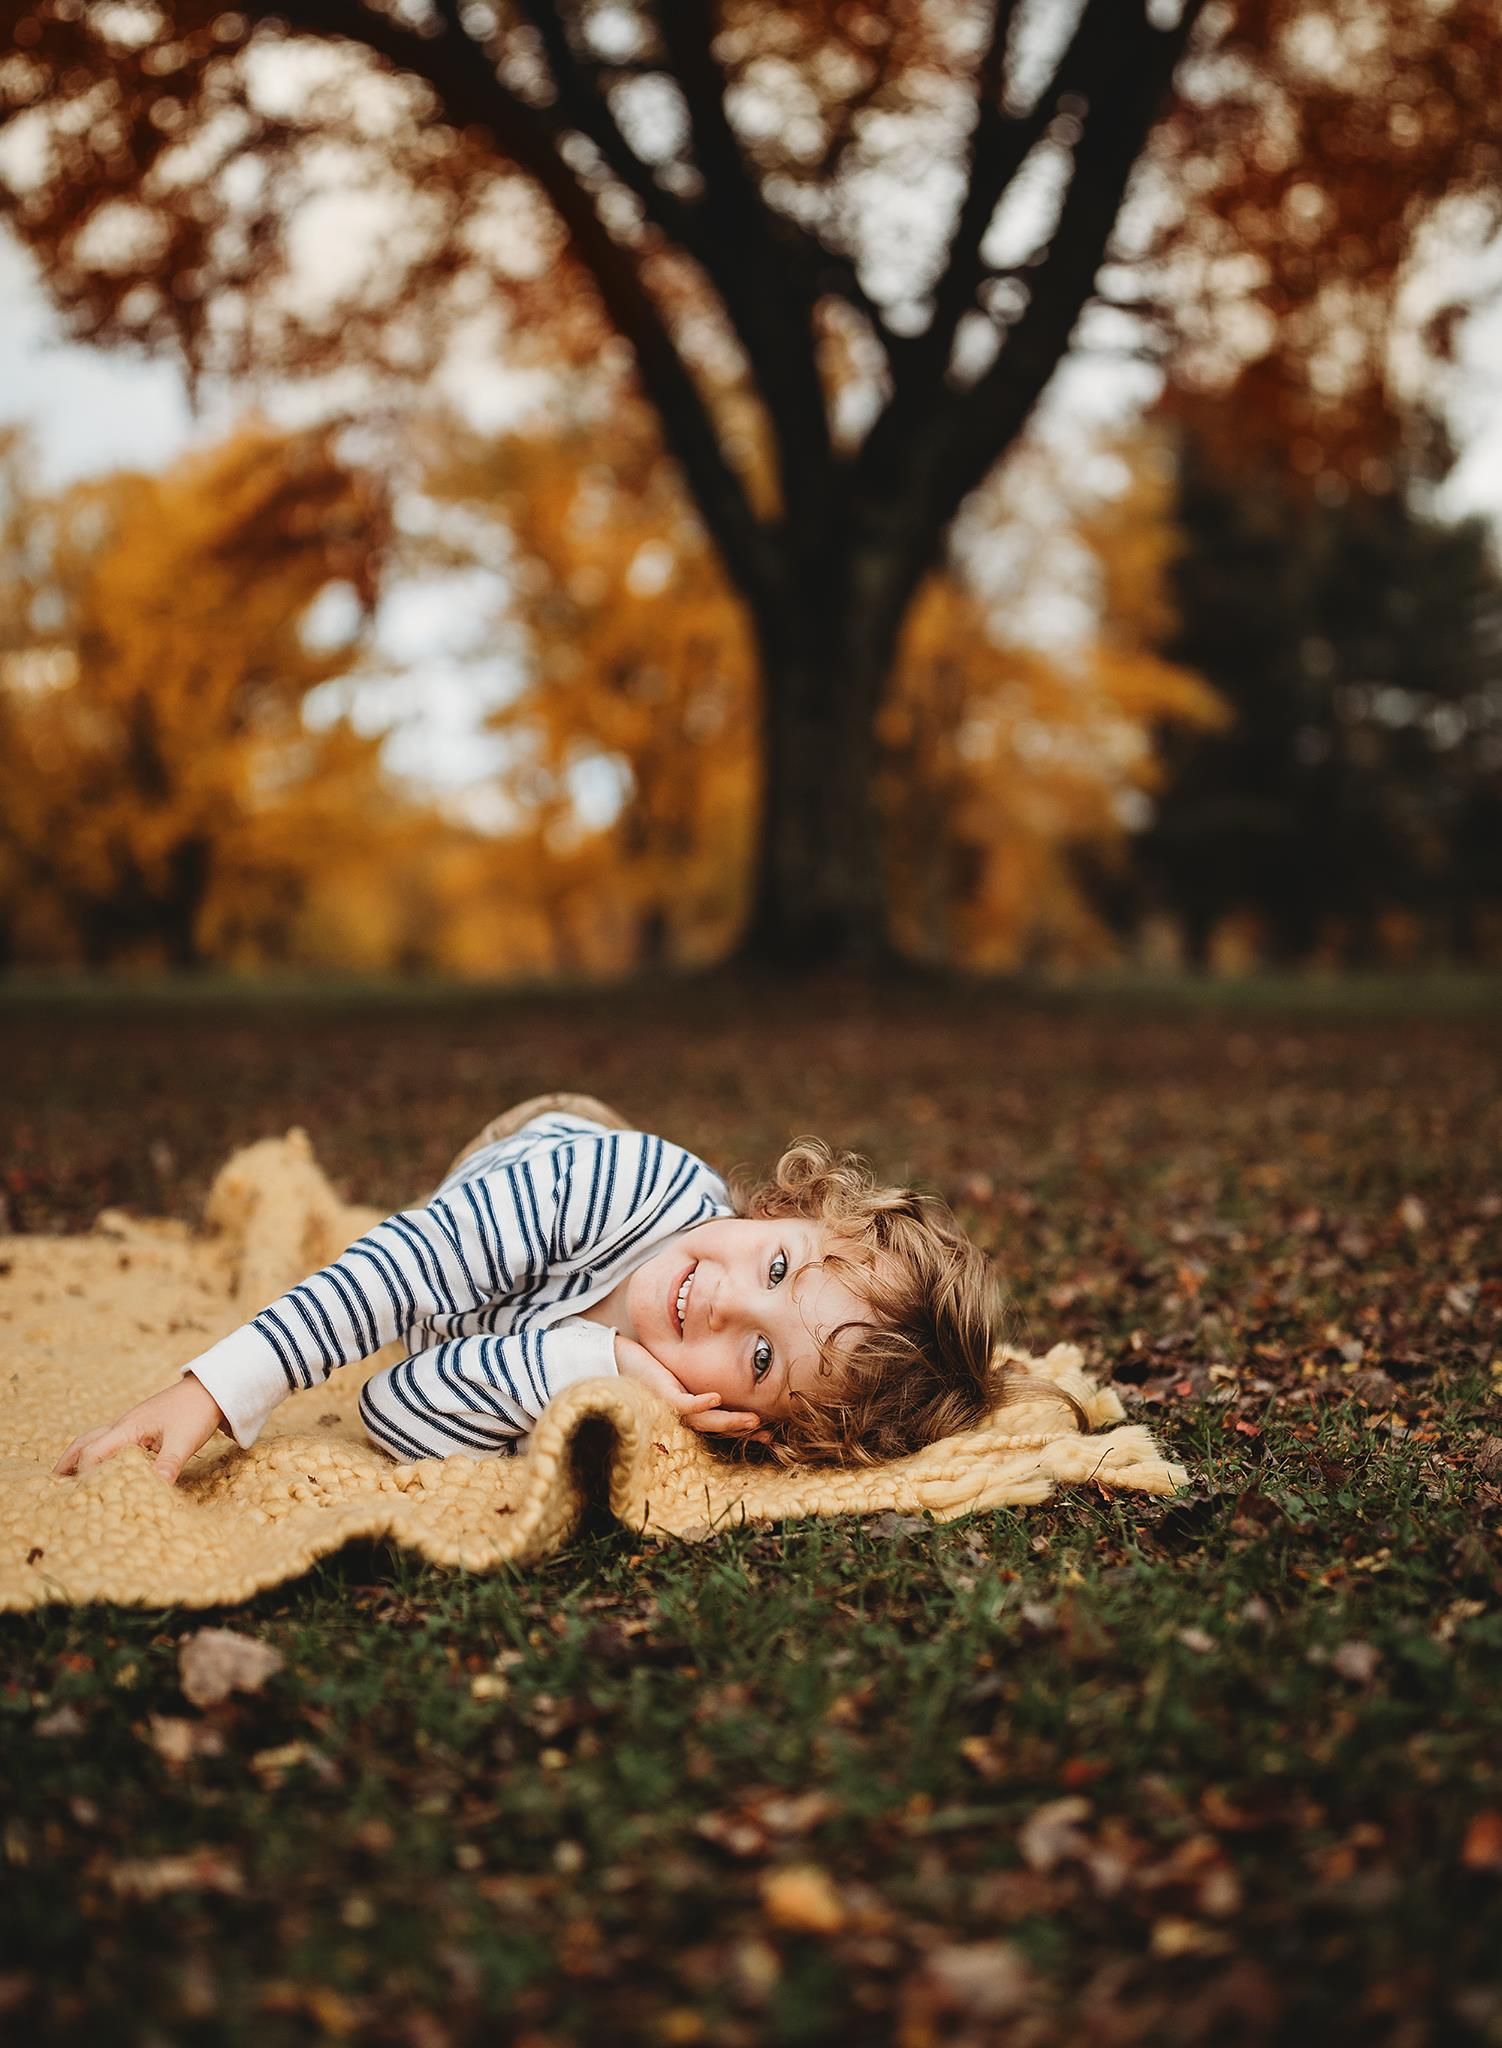 This is currently one of my favorite images of my son. Initially I posed him on the blanket in a way that I felt would work best. Never one to make my life easy, this guy started rolling around all over the place. Somehow I managed to capture this, and I love it.